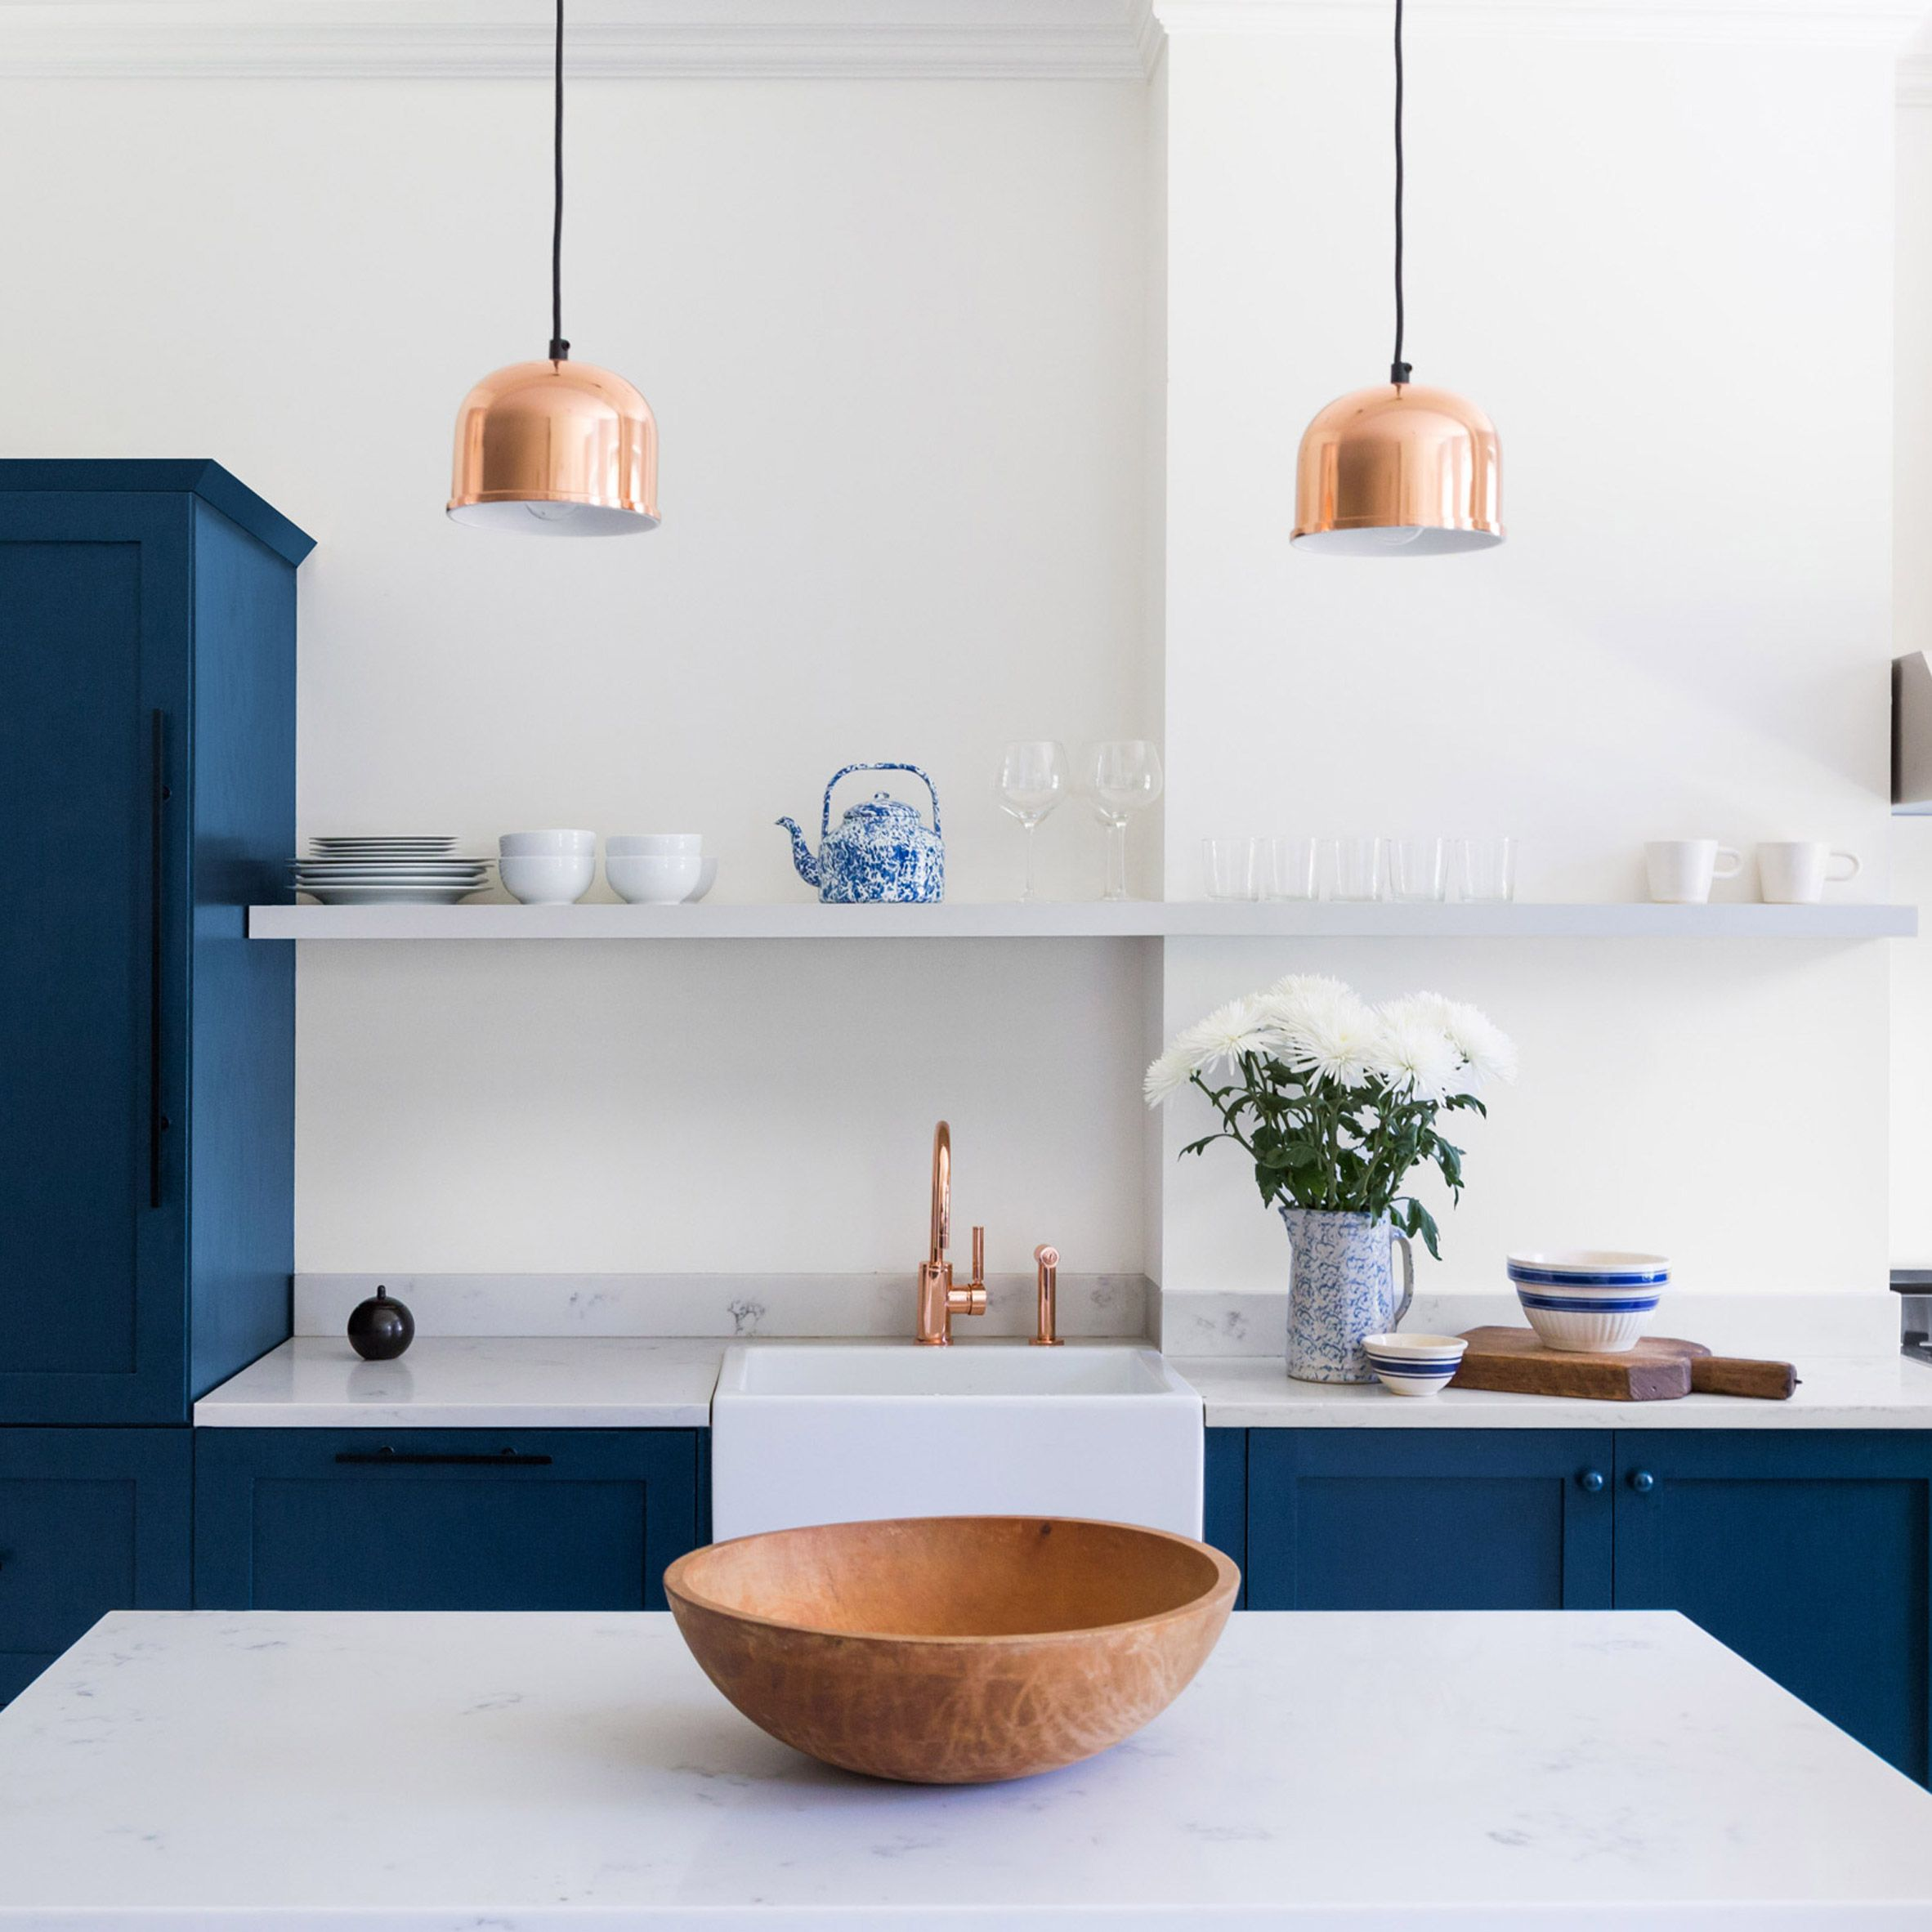 Existing Kitchen Cabinetry Was Ripped Out And Replaced With Custom Made Storage Most Of Which Is Fr Blue Kitchen Inspiration Modernist Furniture Blue Kitchens